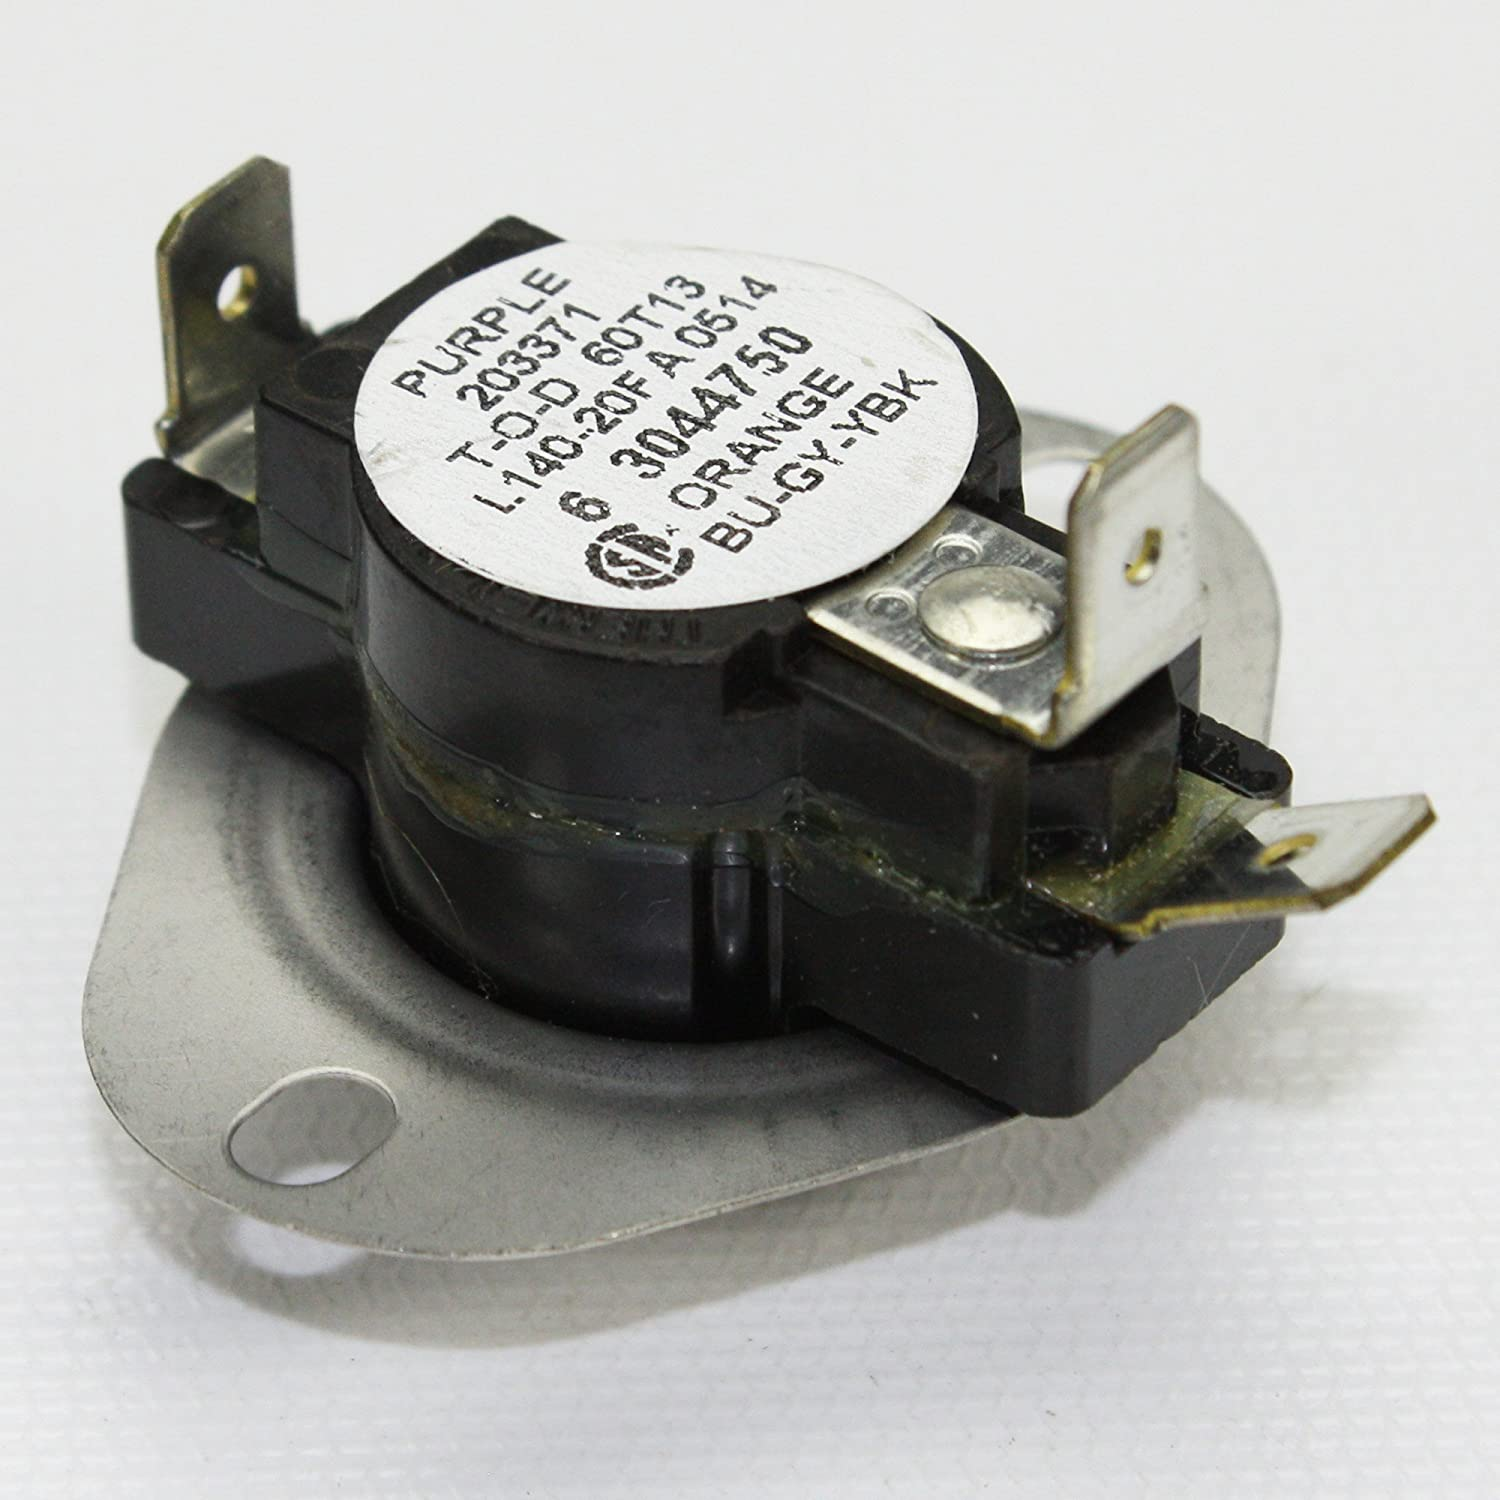 304475 Y304475 Dryer Thermostat For Maytag Parts Mde7400ayw Wiring Information From Appliances